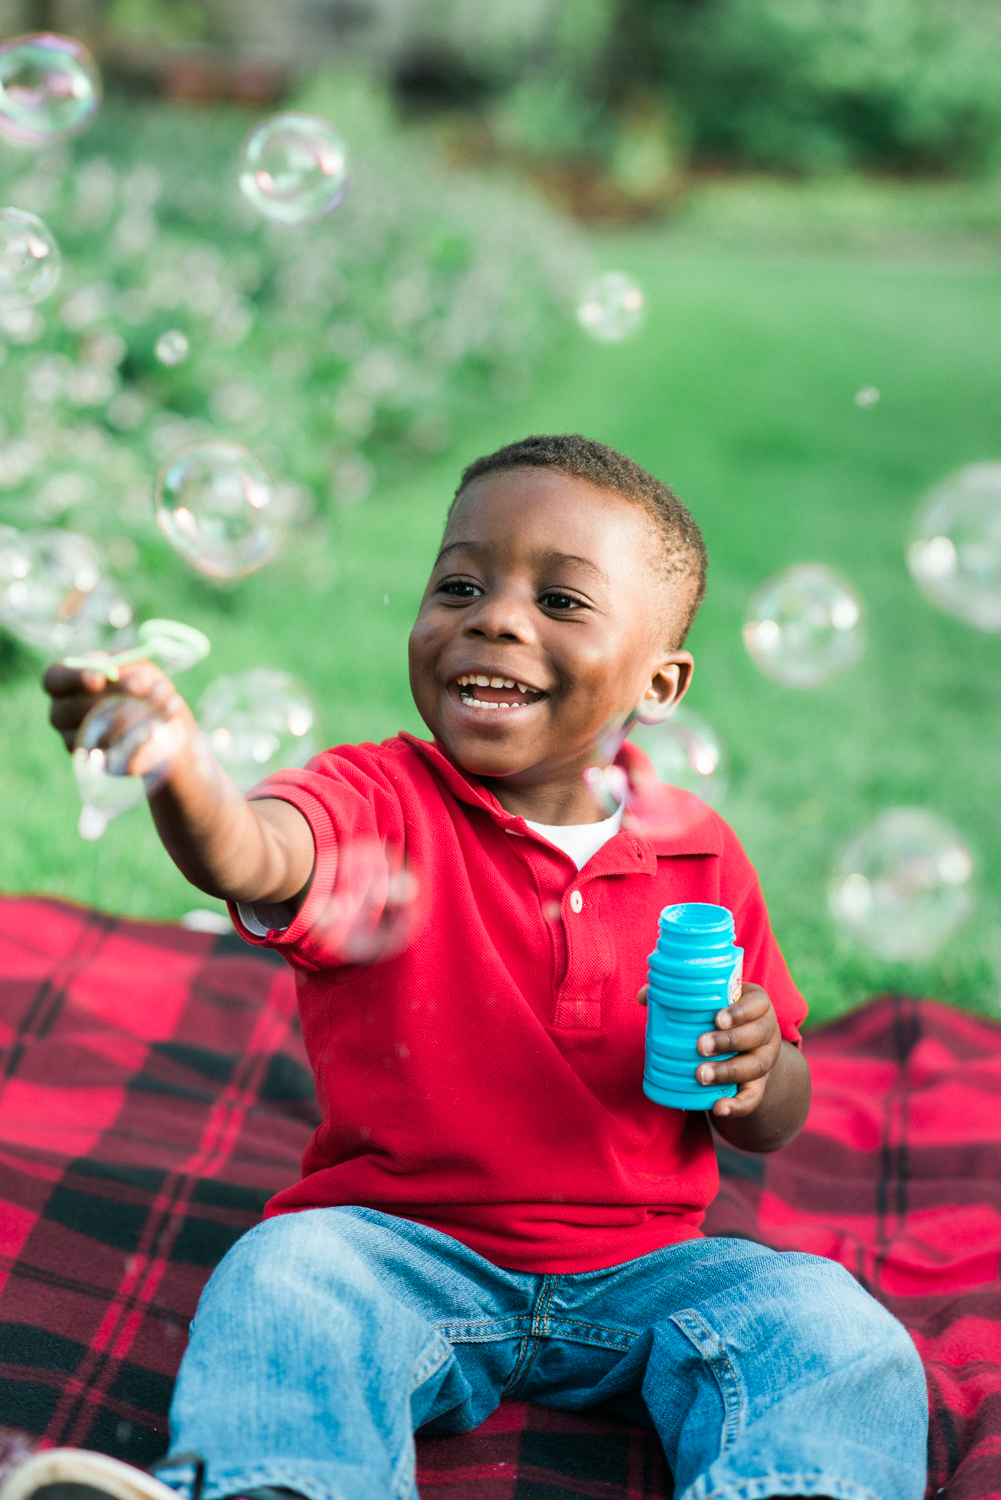 portland-family-photographer-adoption-bubbles-red-blanket-mcmenamins-edgefield-shelley-marie-photo.jpg